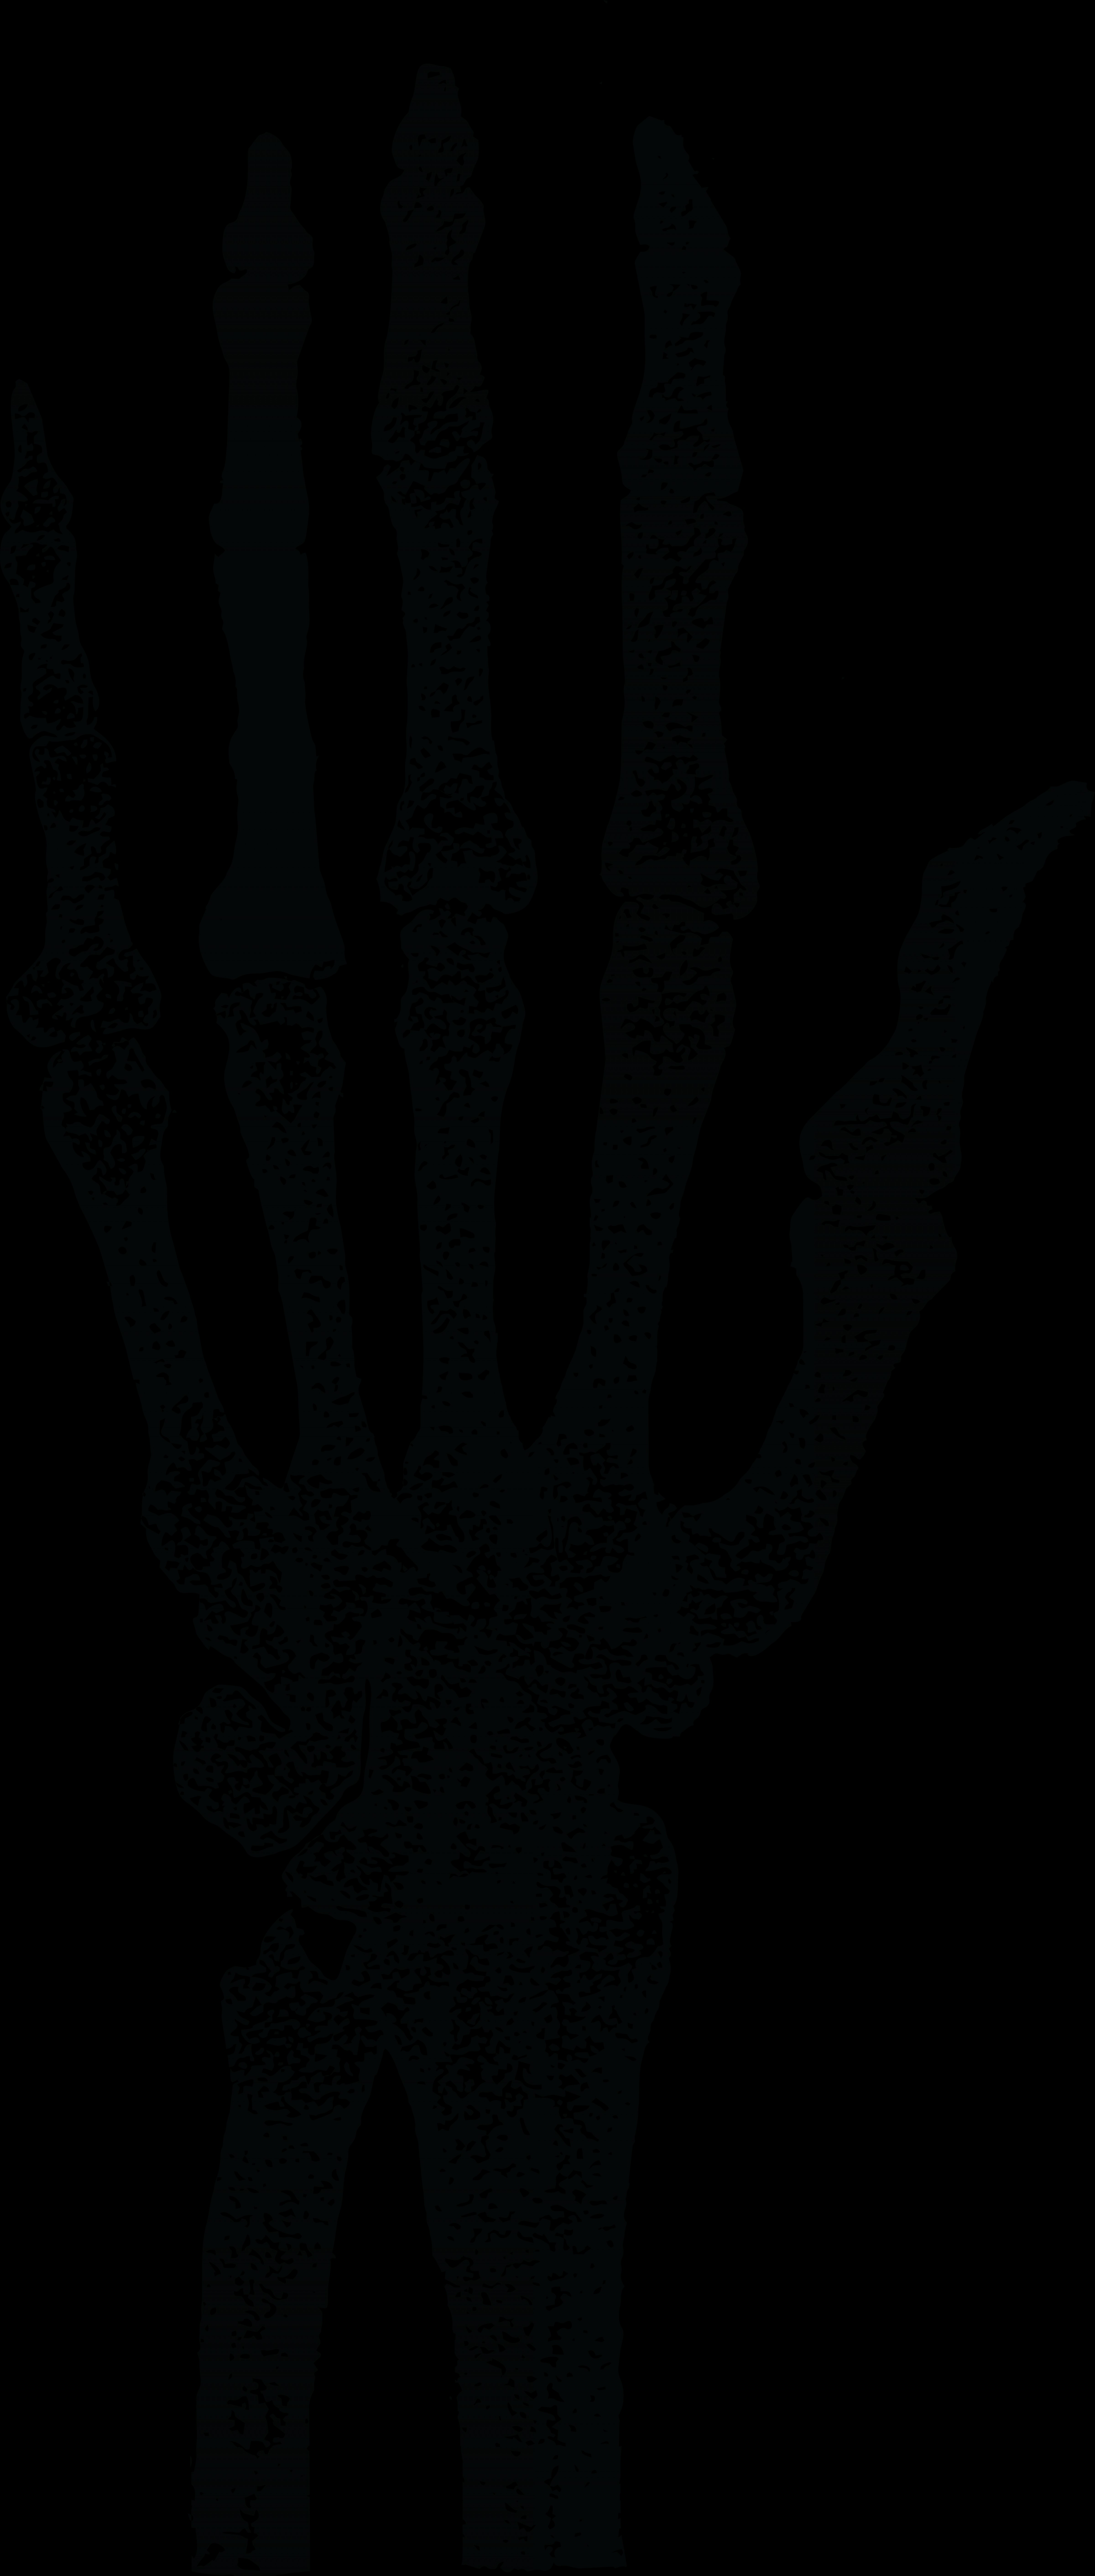 Skeleton Fist Vector: Free Clipart Of A Skeletal Hand